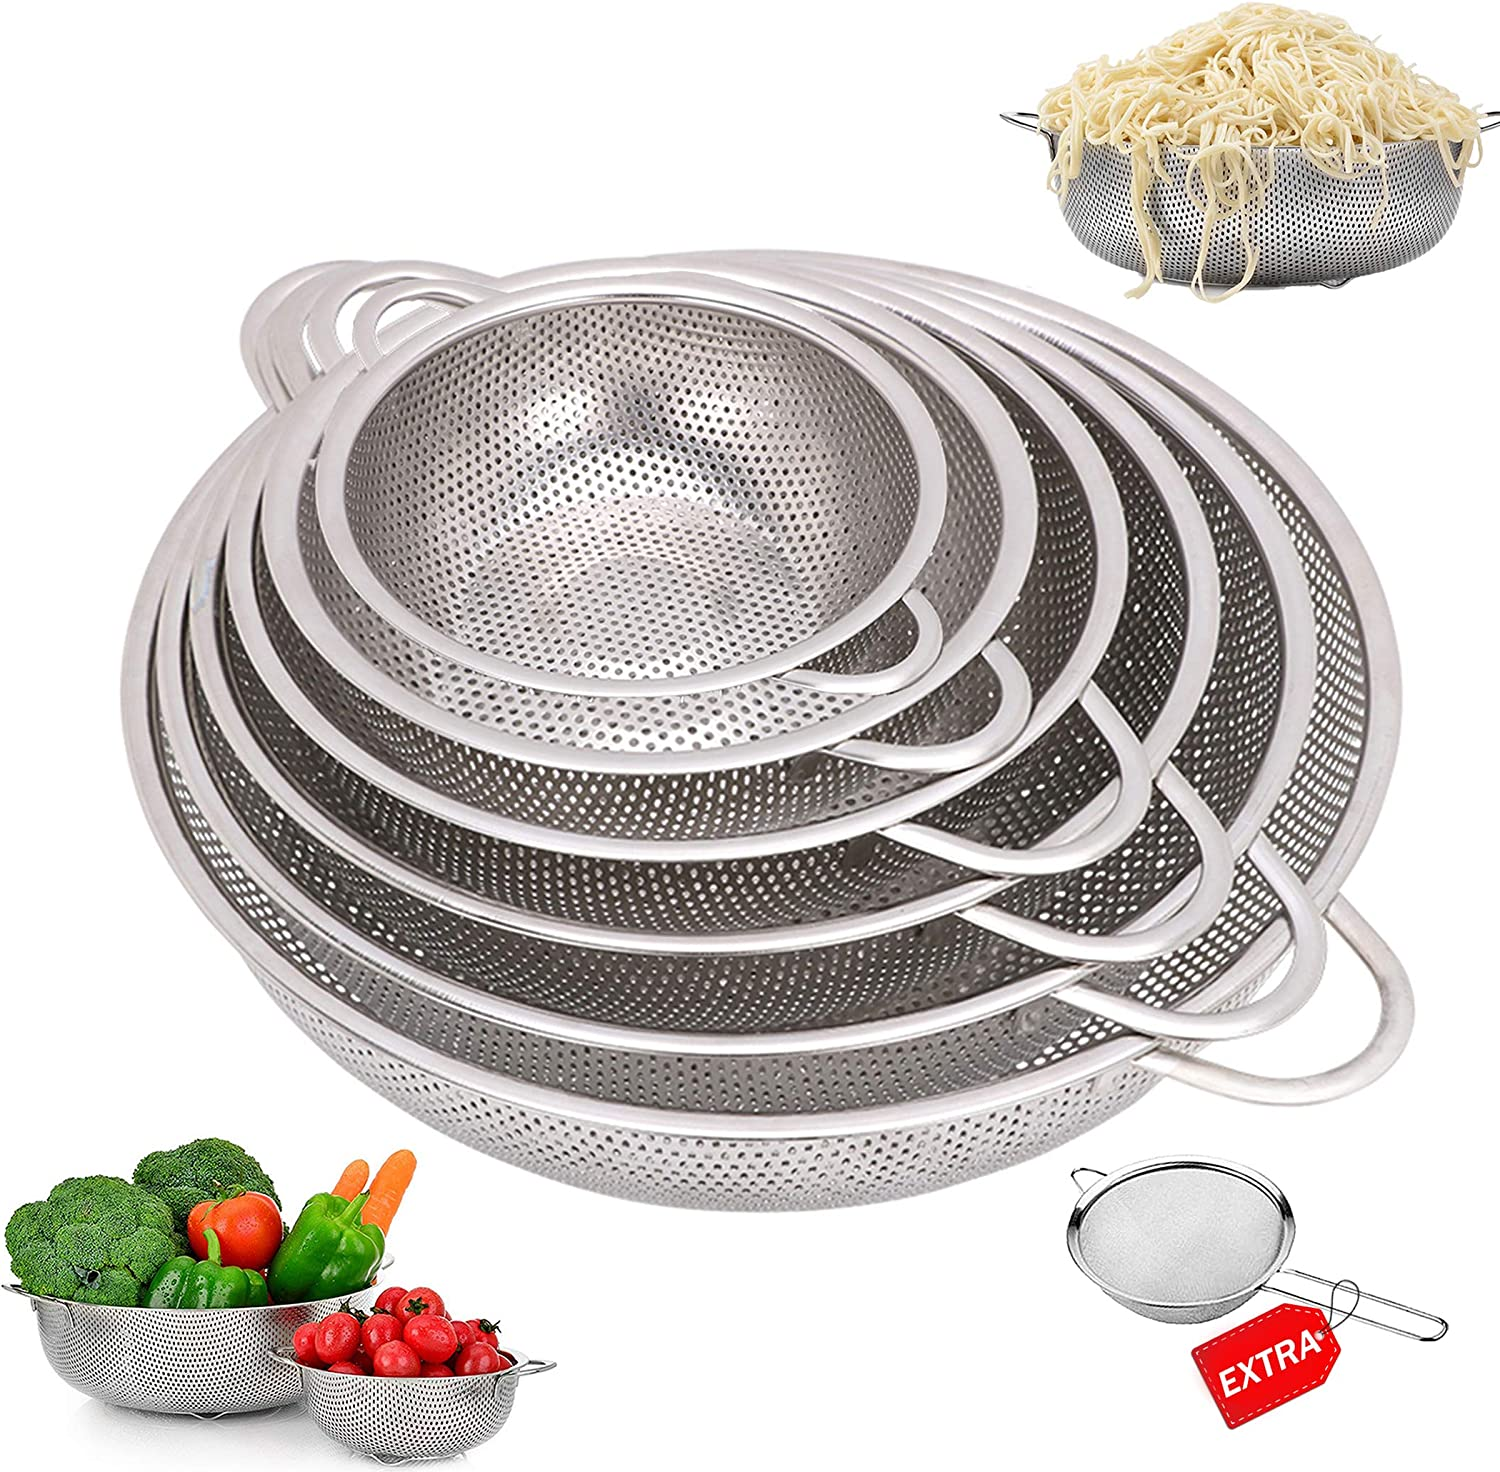 6-Piece Stainless Steel Mesh Micro-Perforated Strainer Colander Set-with Handle and Base, Extra 12cm Strainer - (1-Quart, 2-Quart, 2.5-Quart, 3.5-Quart, 4.5-Quart and 5.5-Quart)